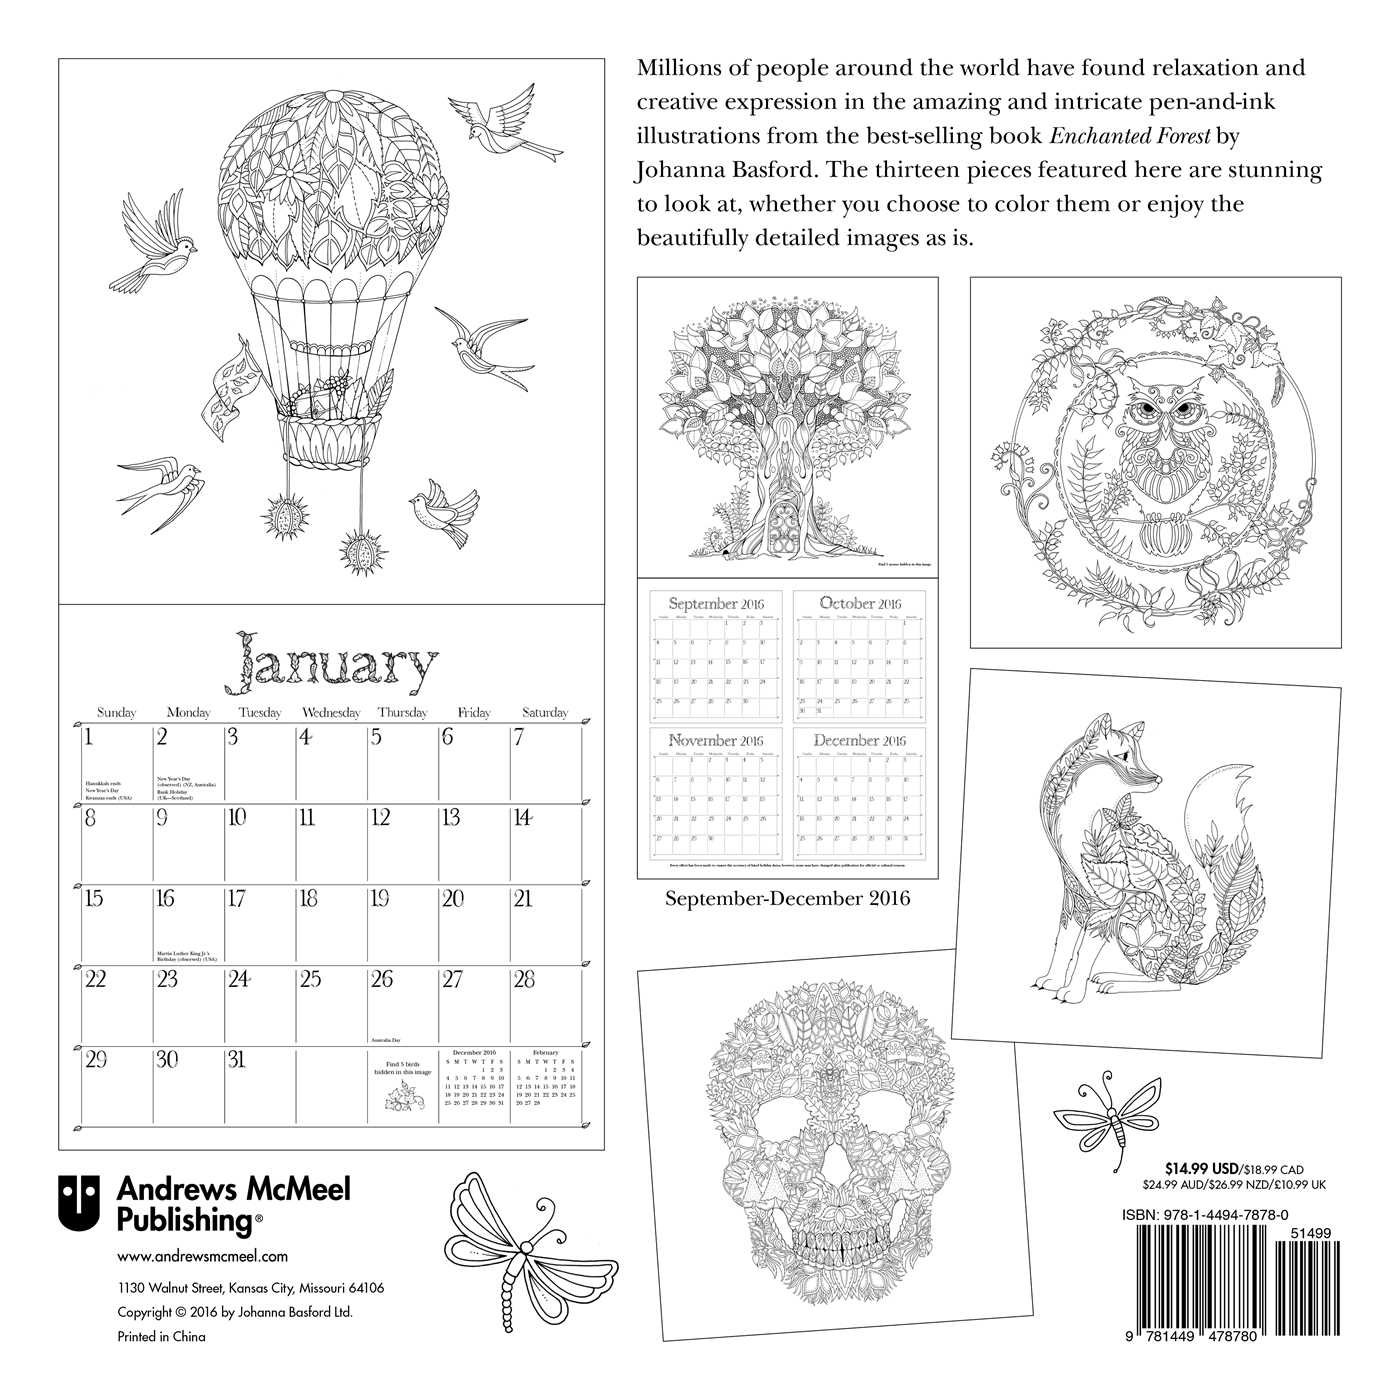 enchanted forest 2017 wall calendar an inky quest and 2017 coloring calendar johanna basford 9781449478780 amazoncom books